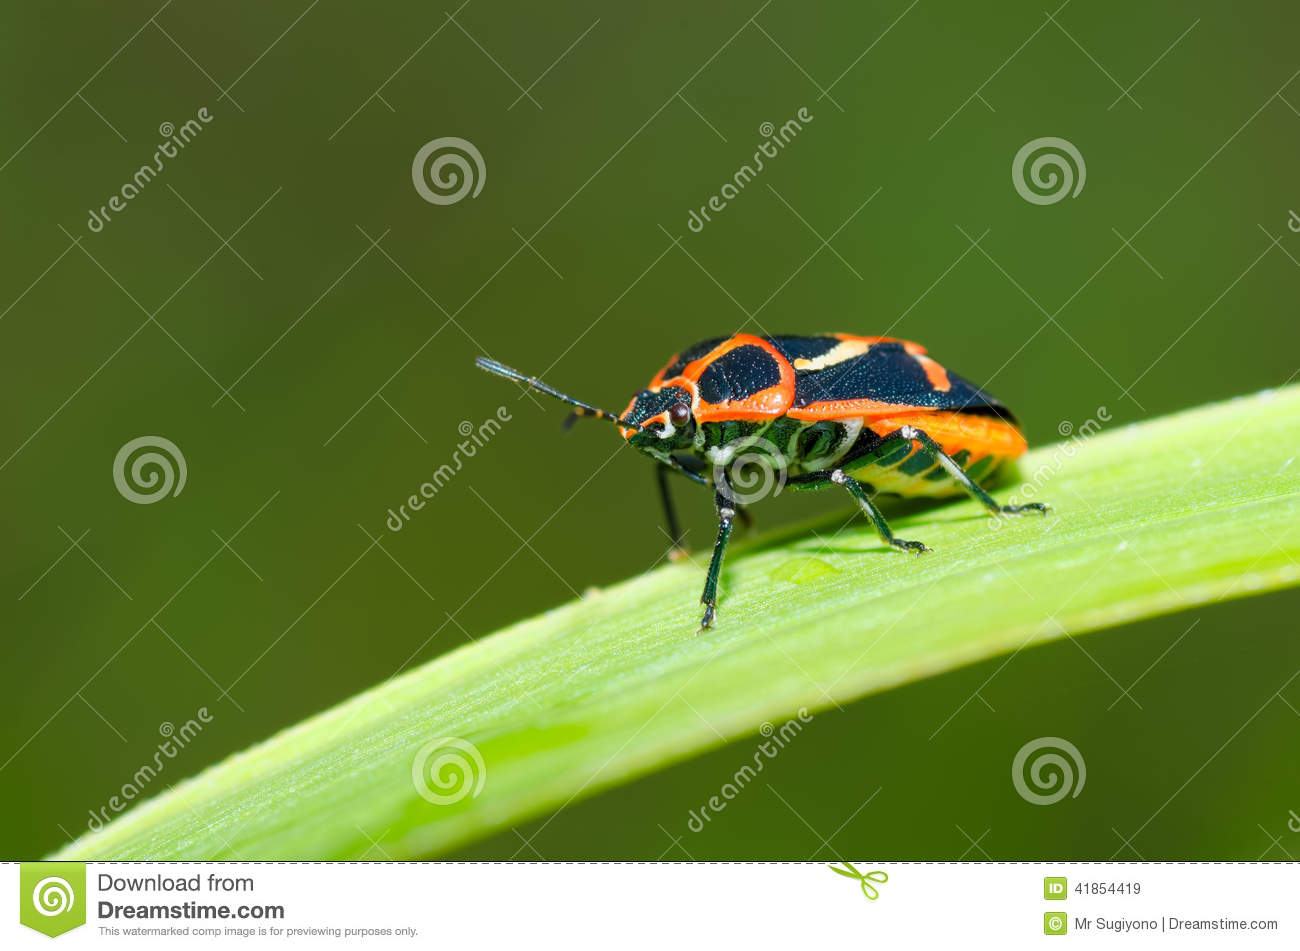 Insects on the grass